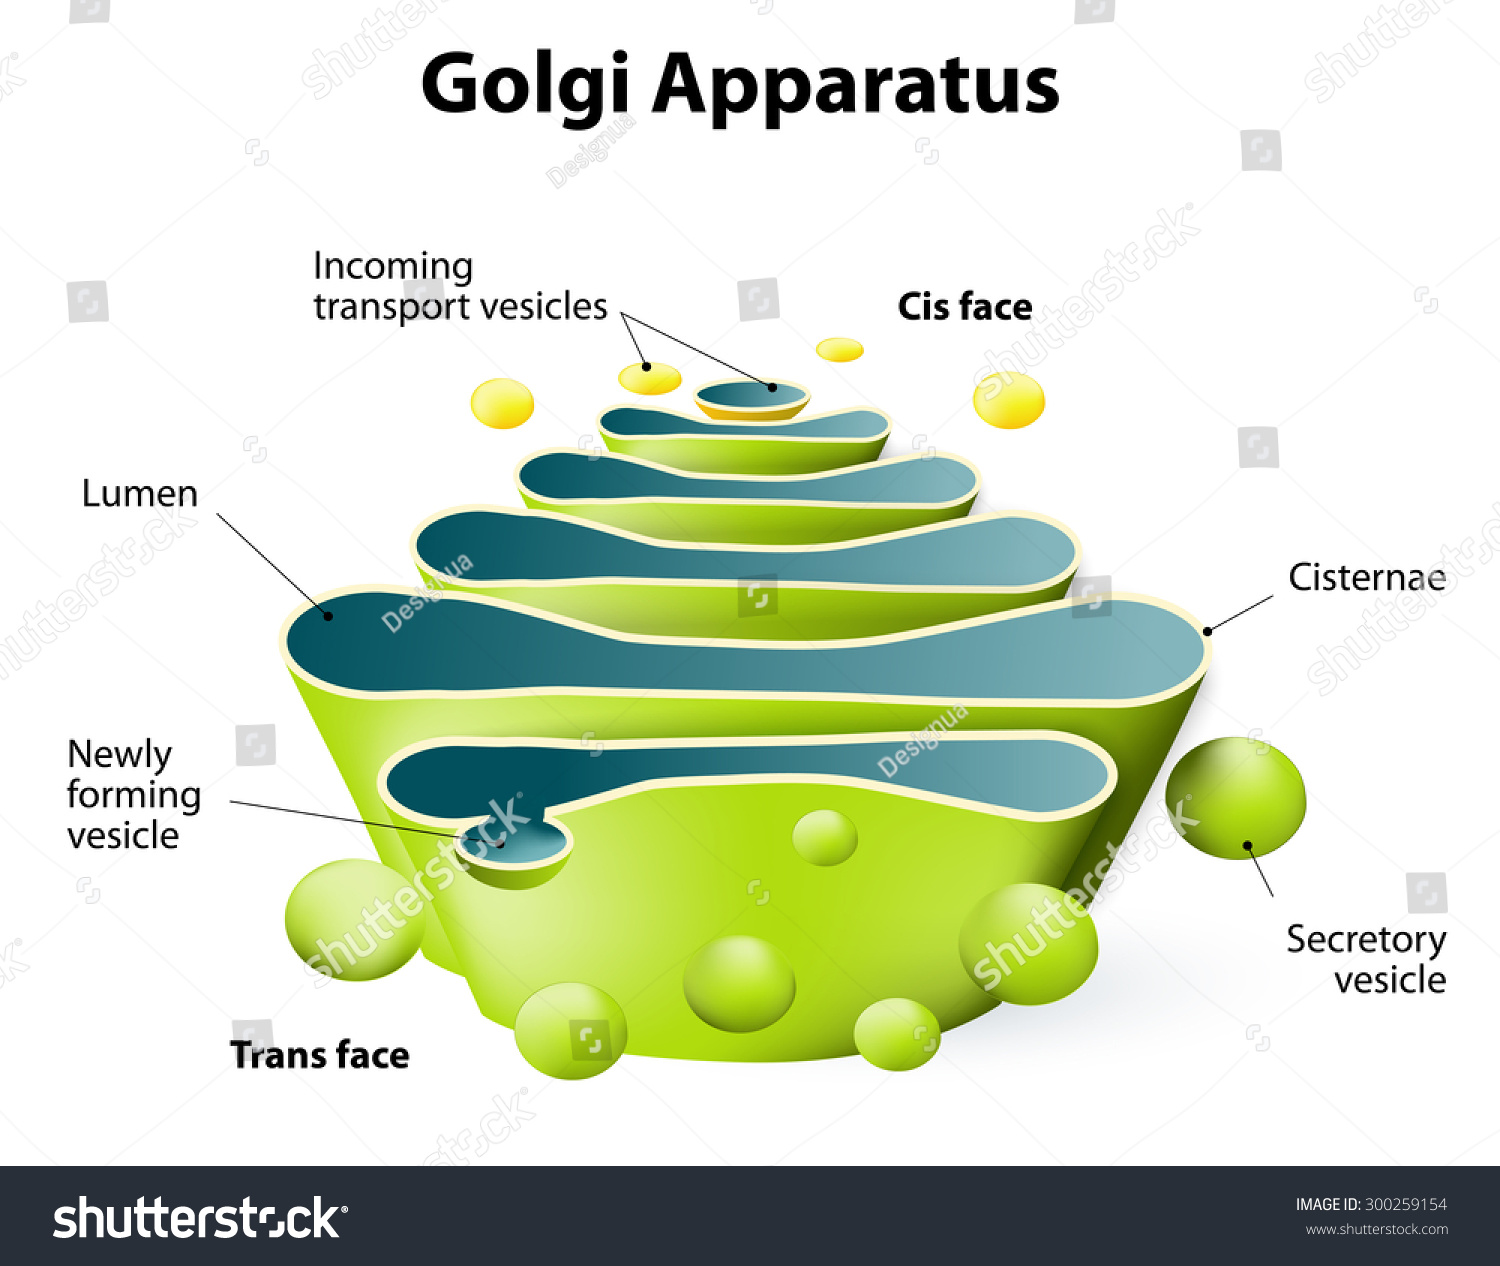 What are some facts about the Golgi apparatus?